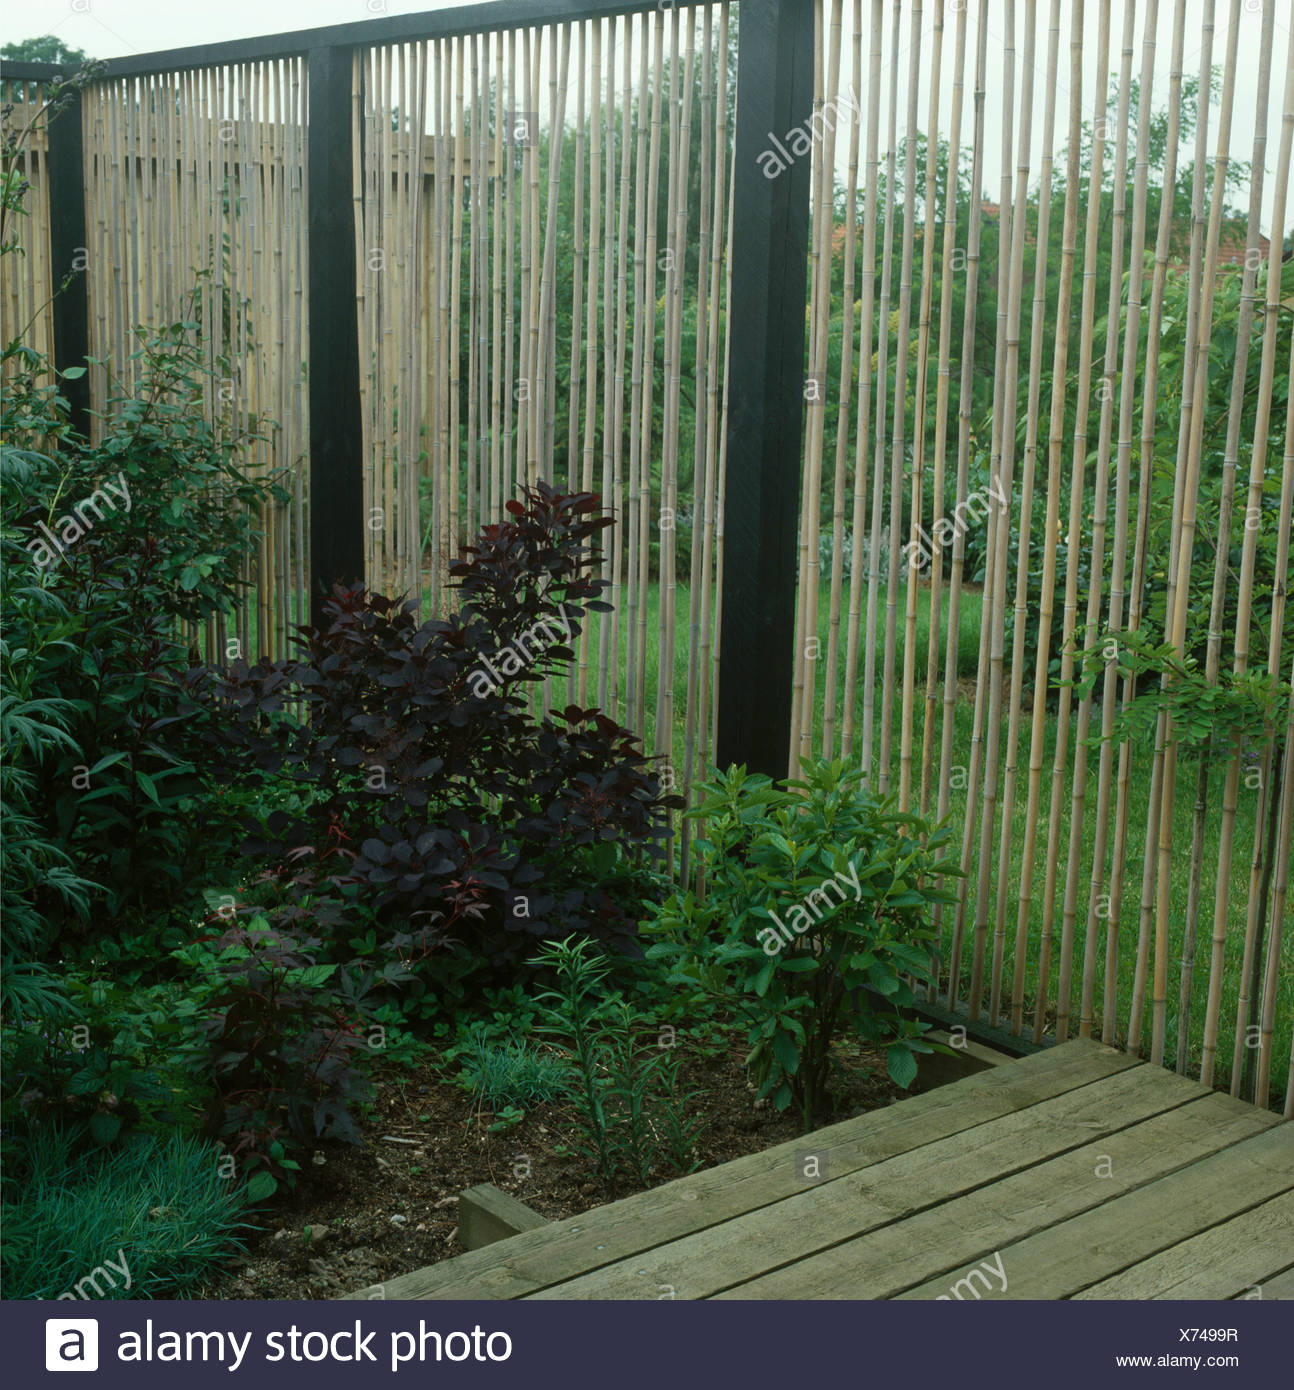 Picture of: Bamboo Fence Beside Shrubs In Garden Border Stock Photo Alamy